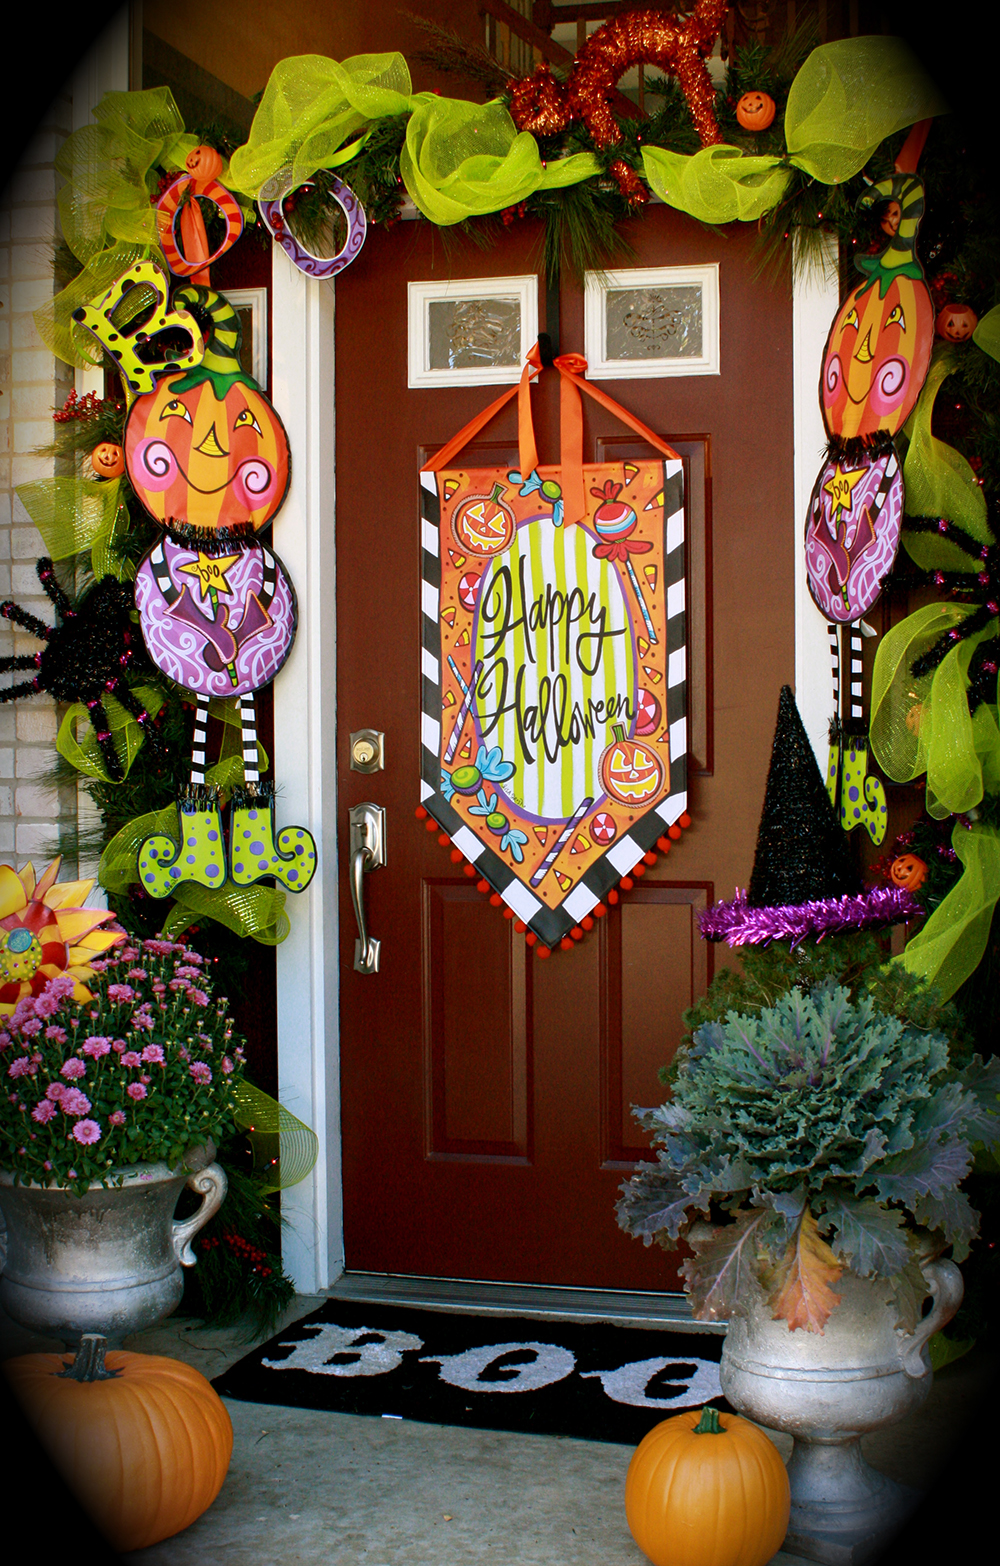 50 Best Halloween Door Decorations for 2020